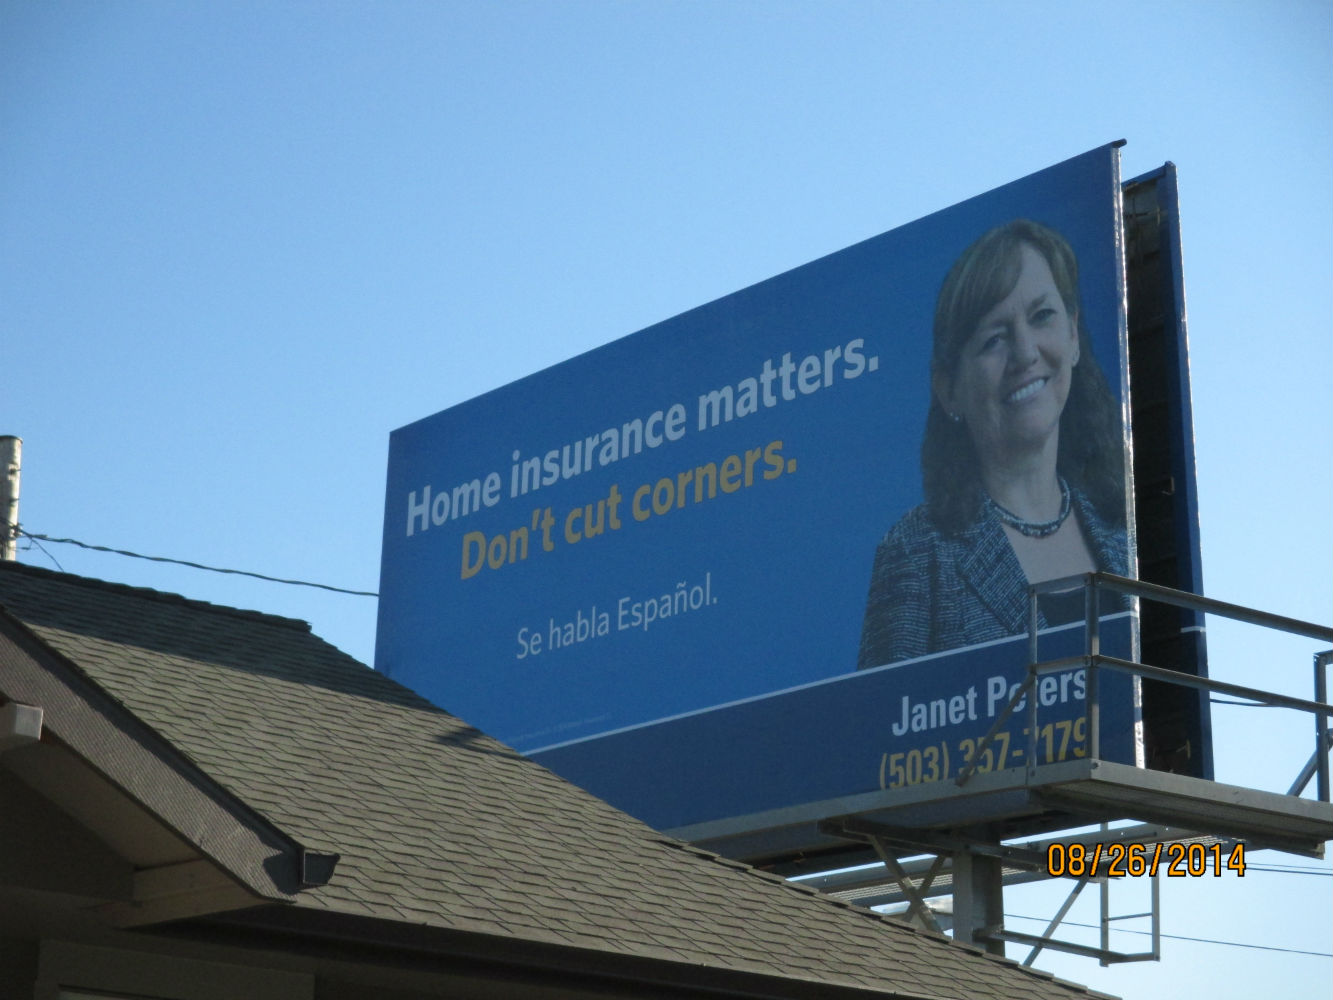 Janet Peters: Allstate Insurance image 5